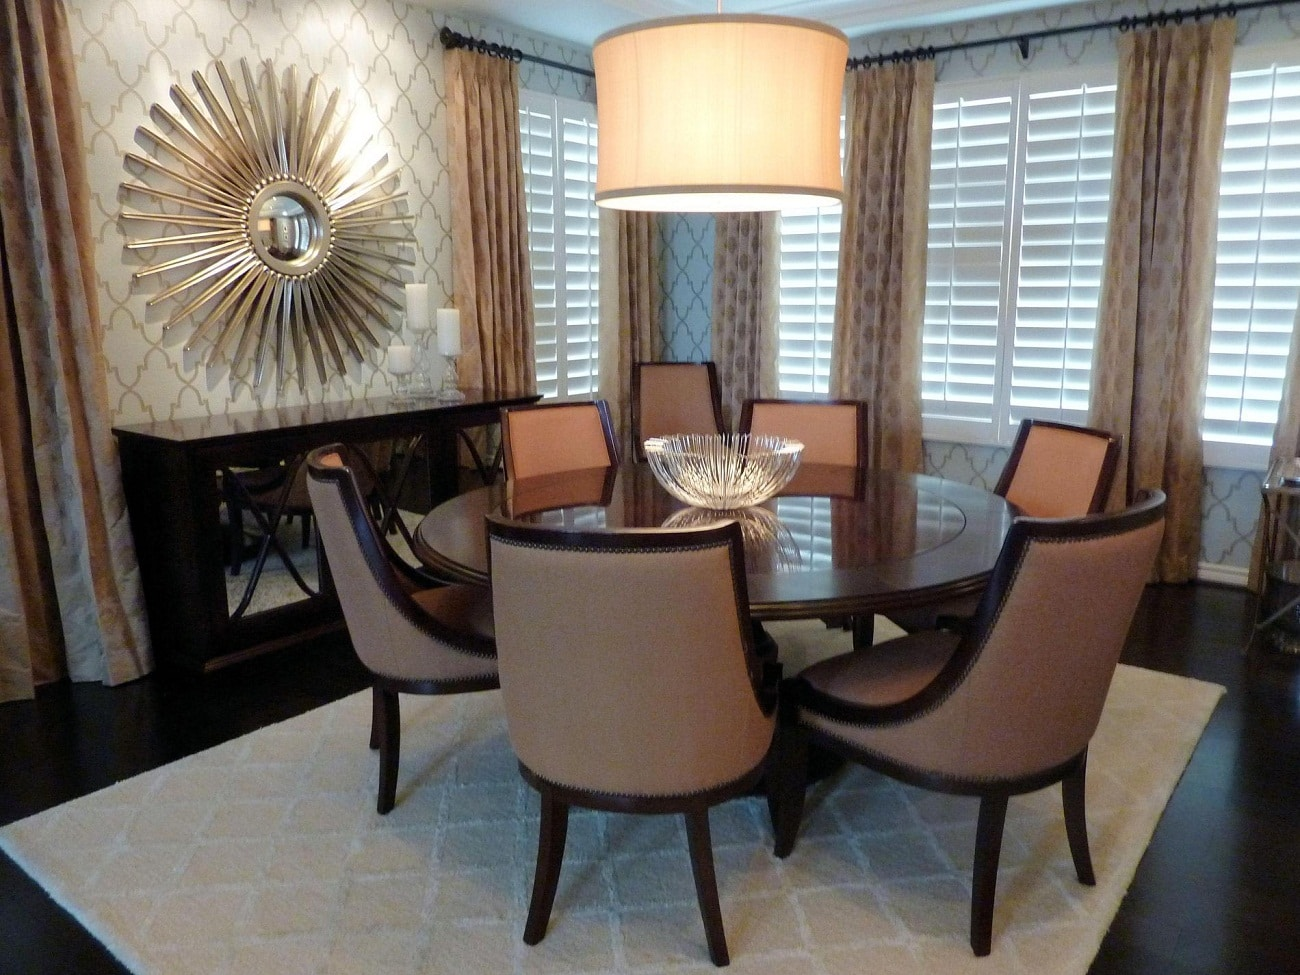 Home decor dining room ideas living room decor ideas for Dining rooms ideas home